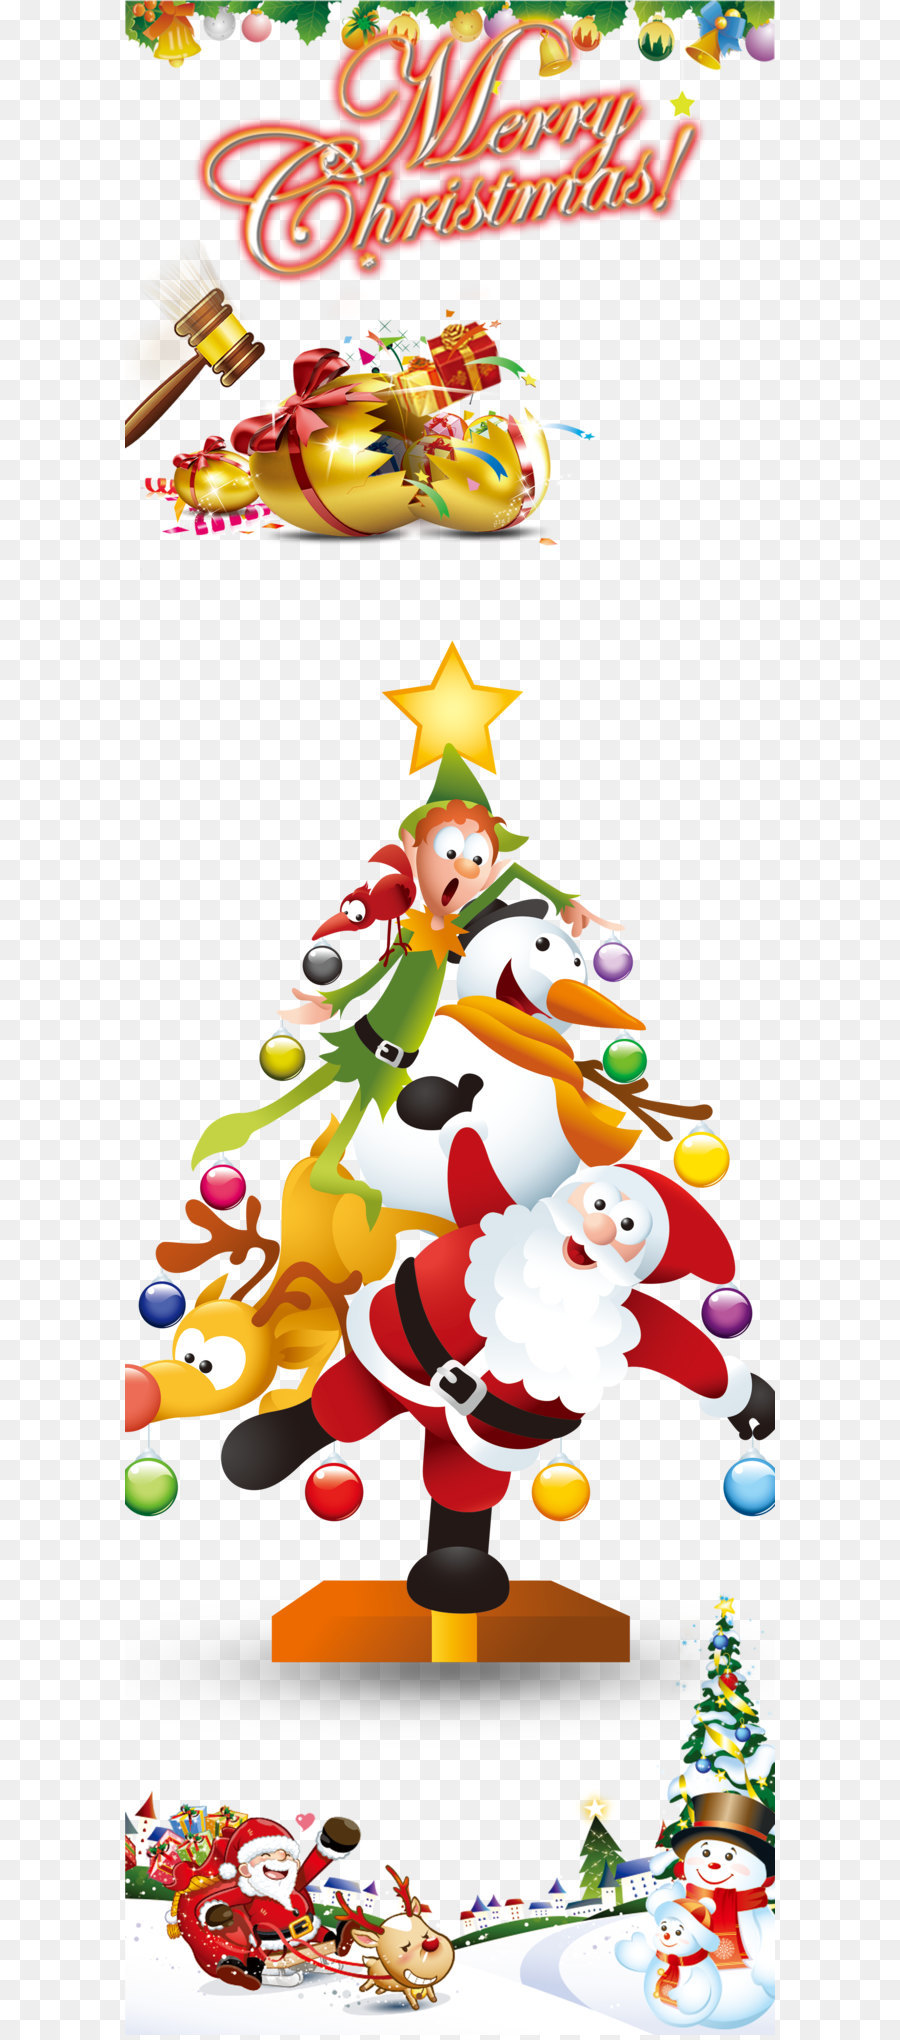 Christmas Holiday Clip art - Creative Christmas png download - 1956 ...